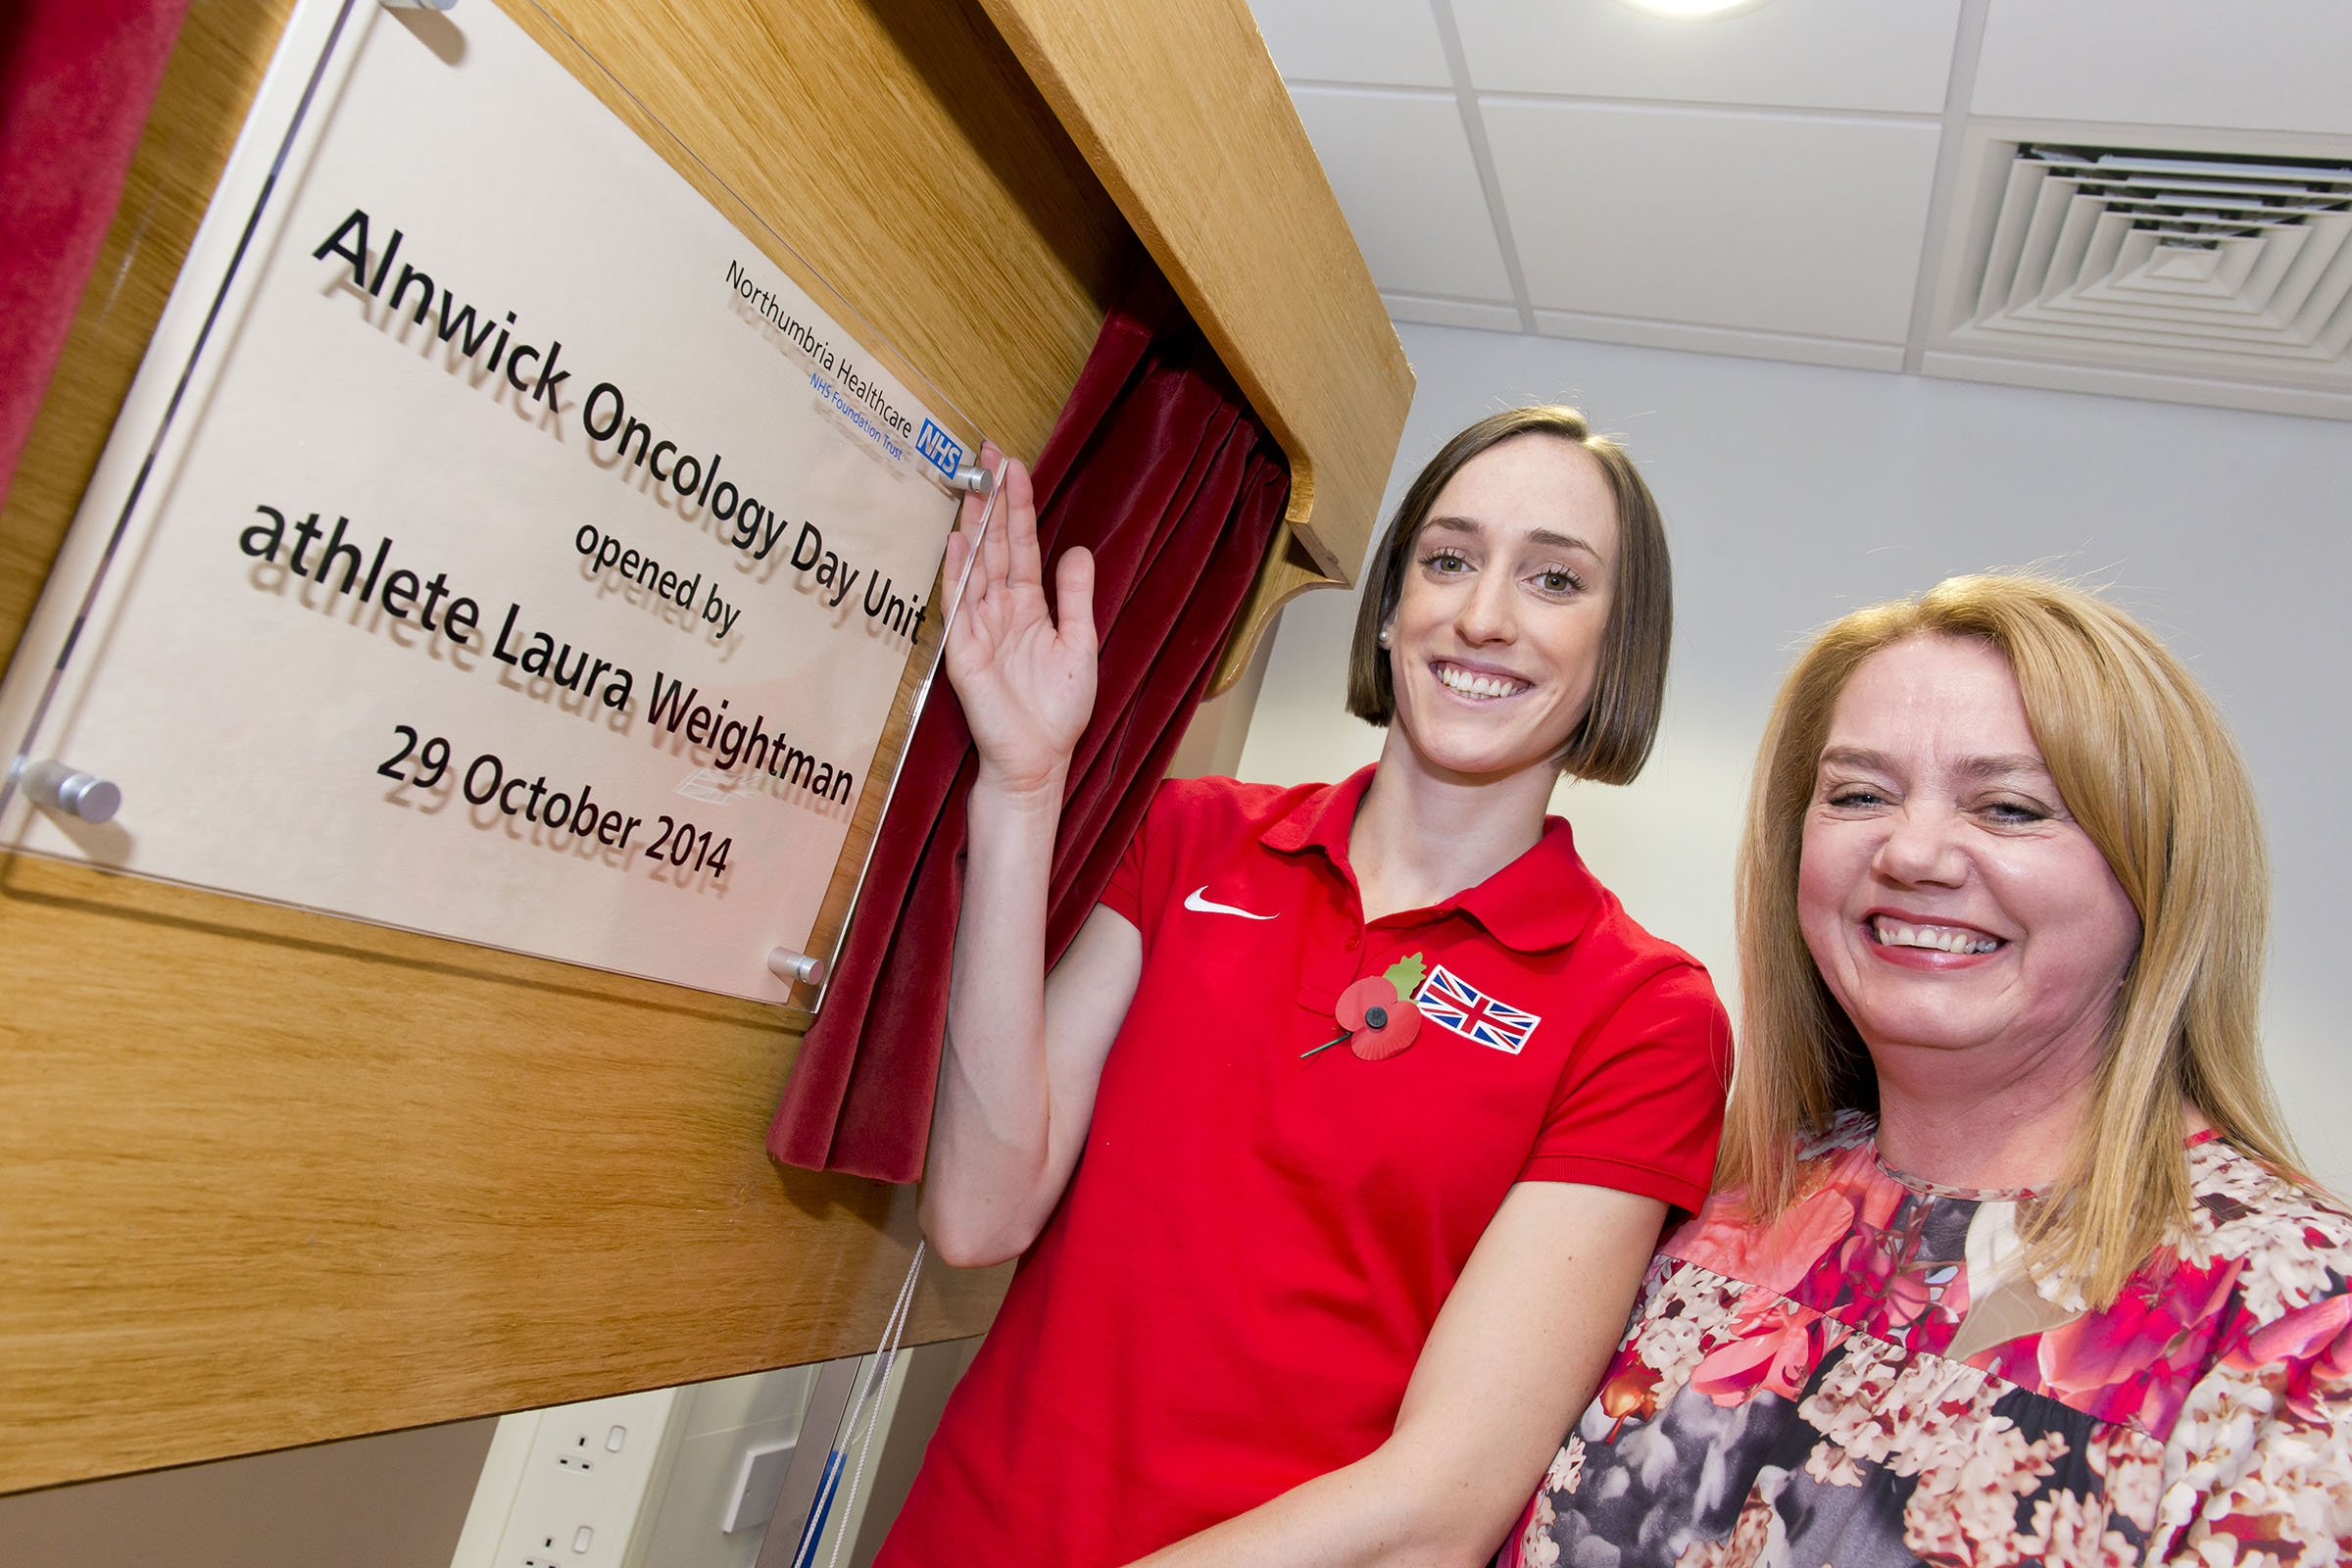 Athlete Laura Weightman officially opens Alnwick's new oncology unit